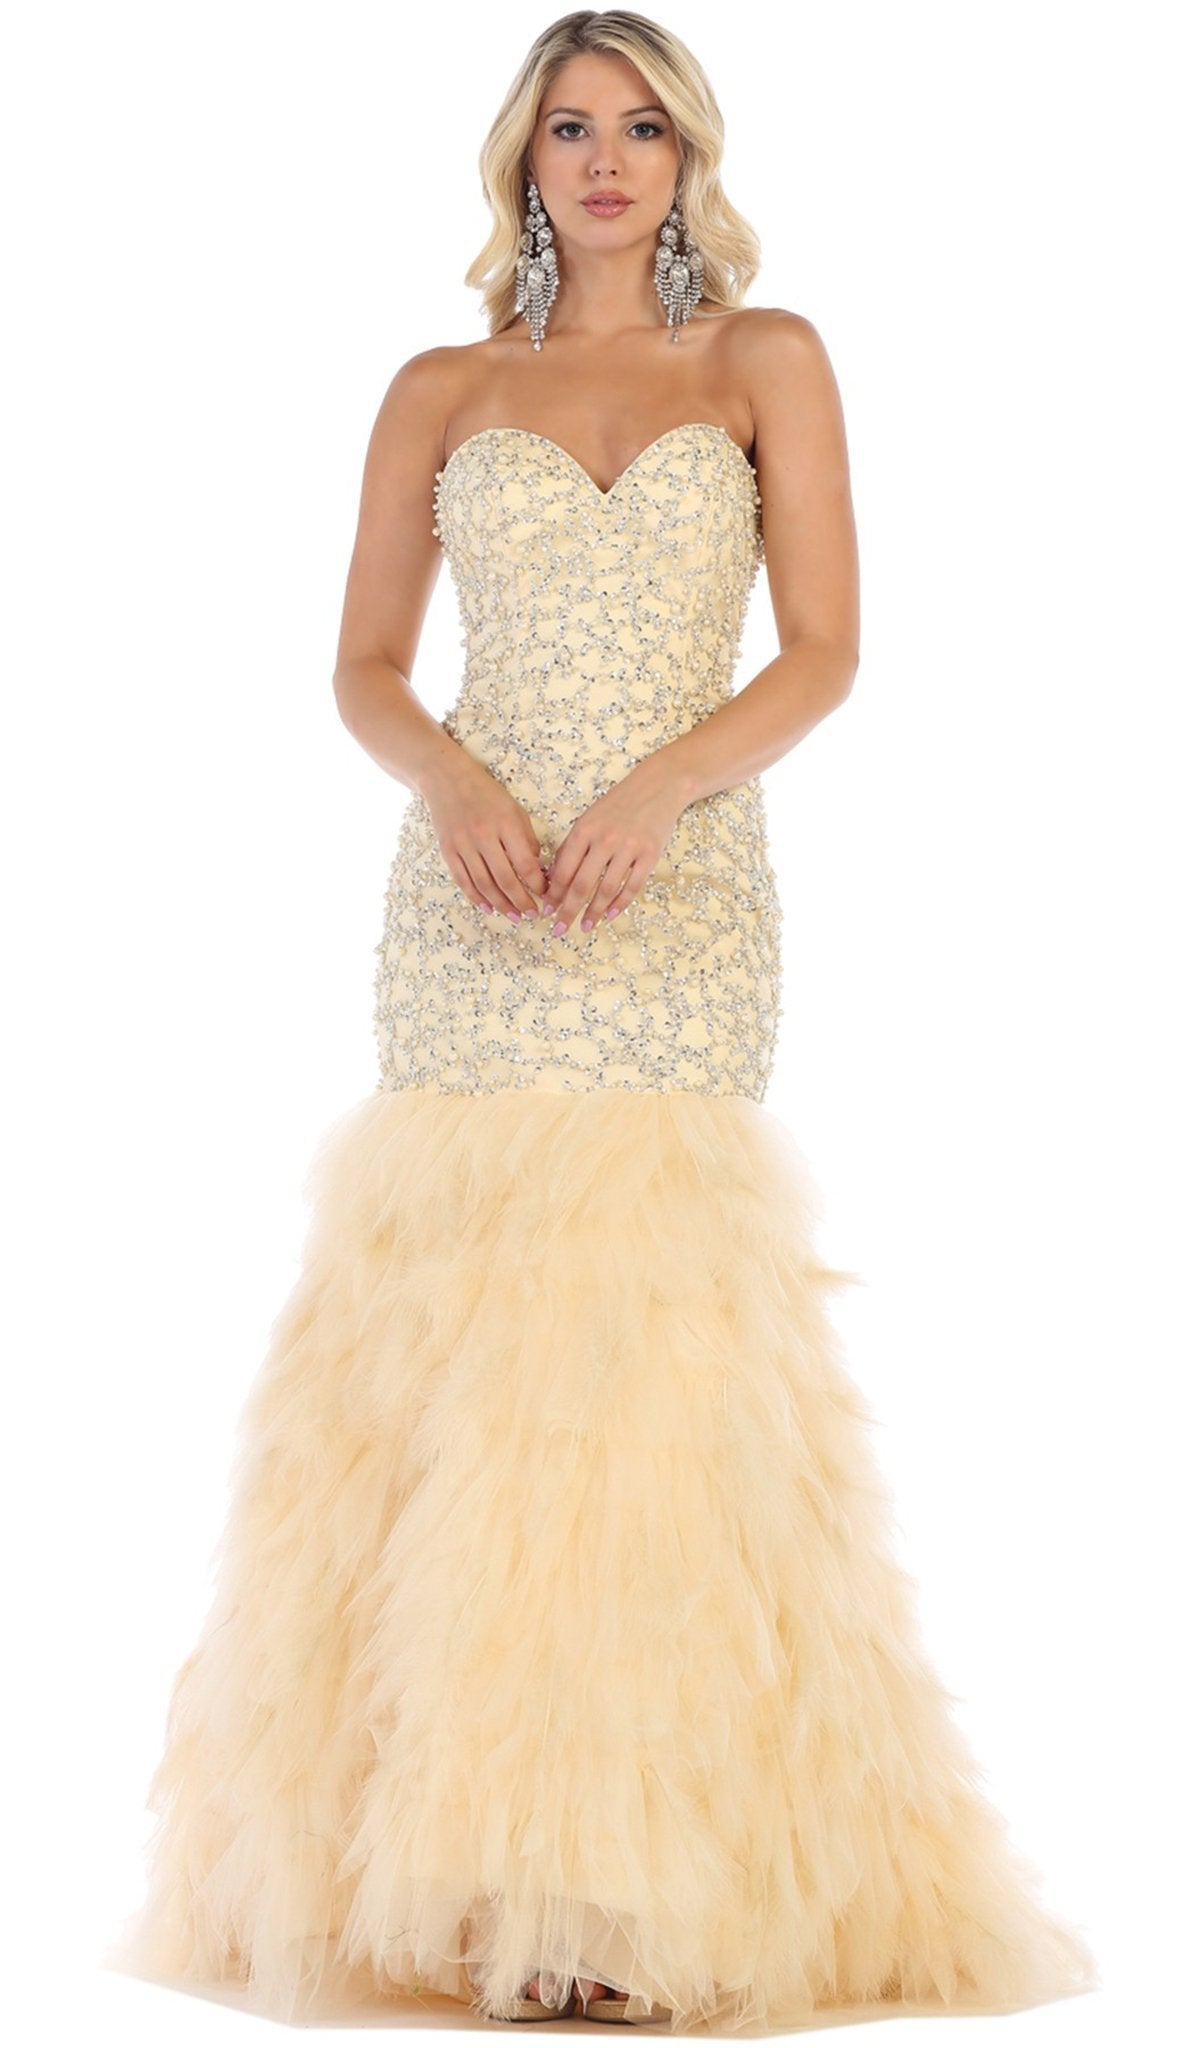 May Queen - RQ7668SC Strapless Feathered Tulle Gown